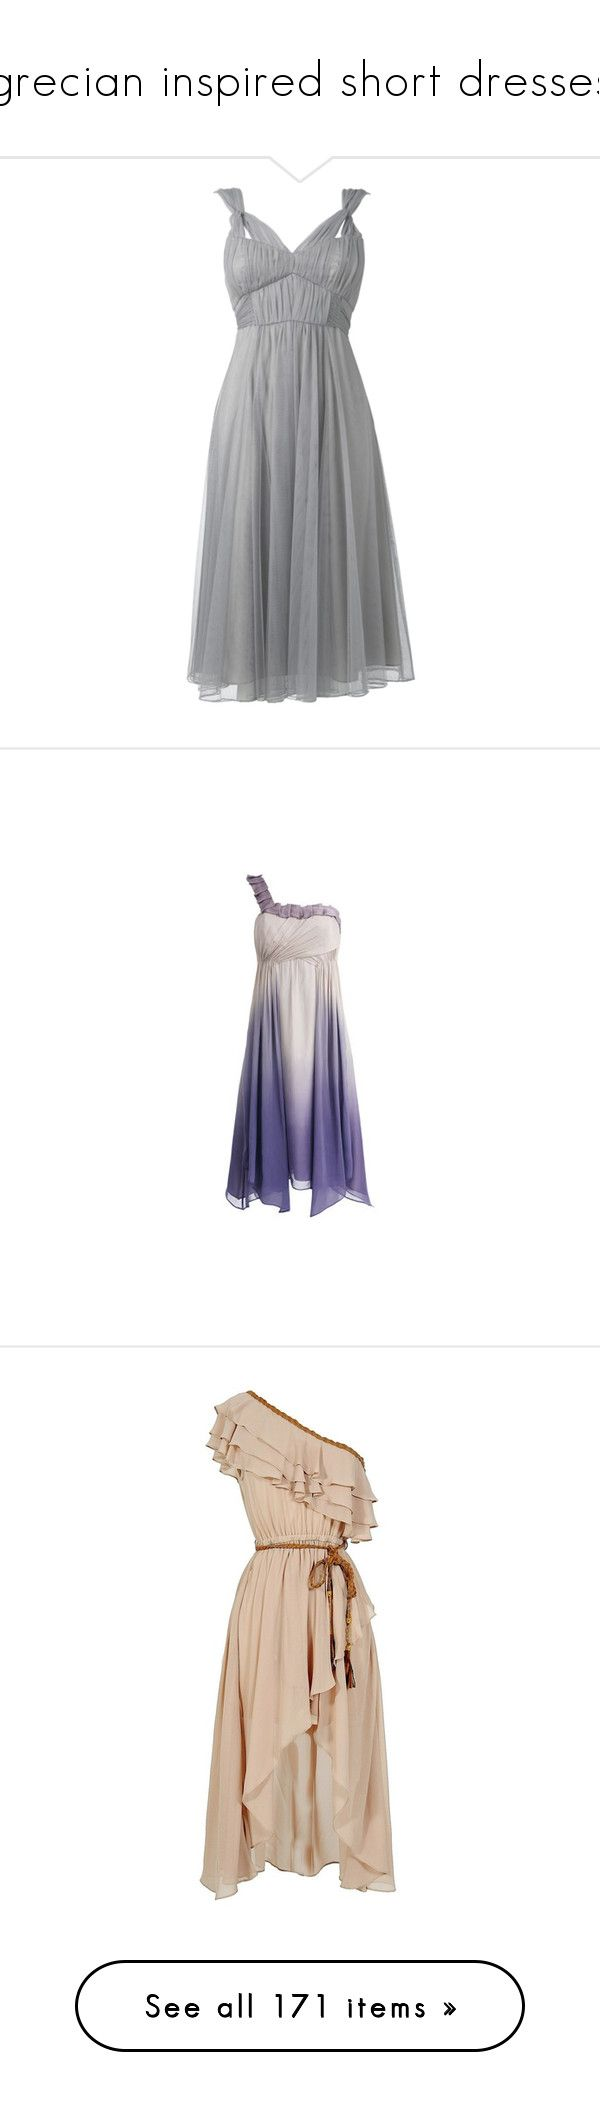 """grecian inspired short dresses"" by rebellious-ingenue ❤ liked on Polyvore featuring dresses, vestidos, short dresses, gowns, mesh dress, shirred dress, rouched dress, v neck short dress, purple and one shoulder short dress"